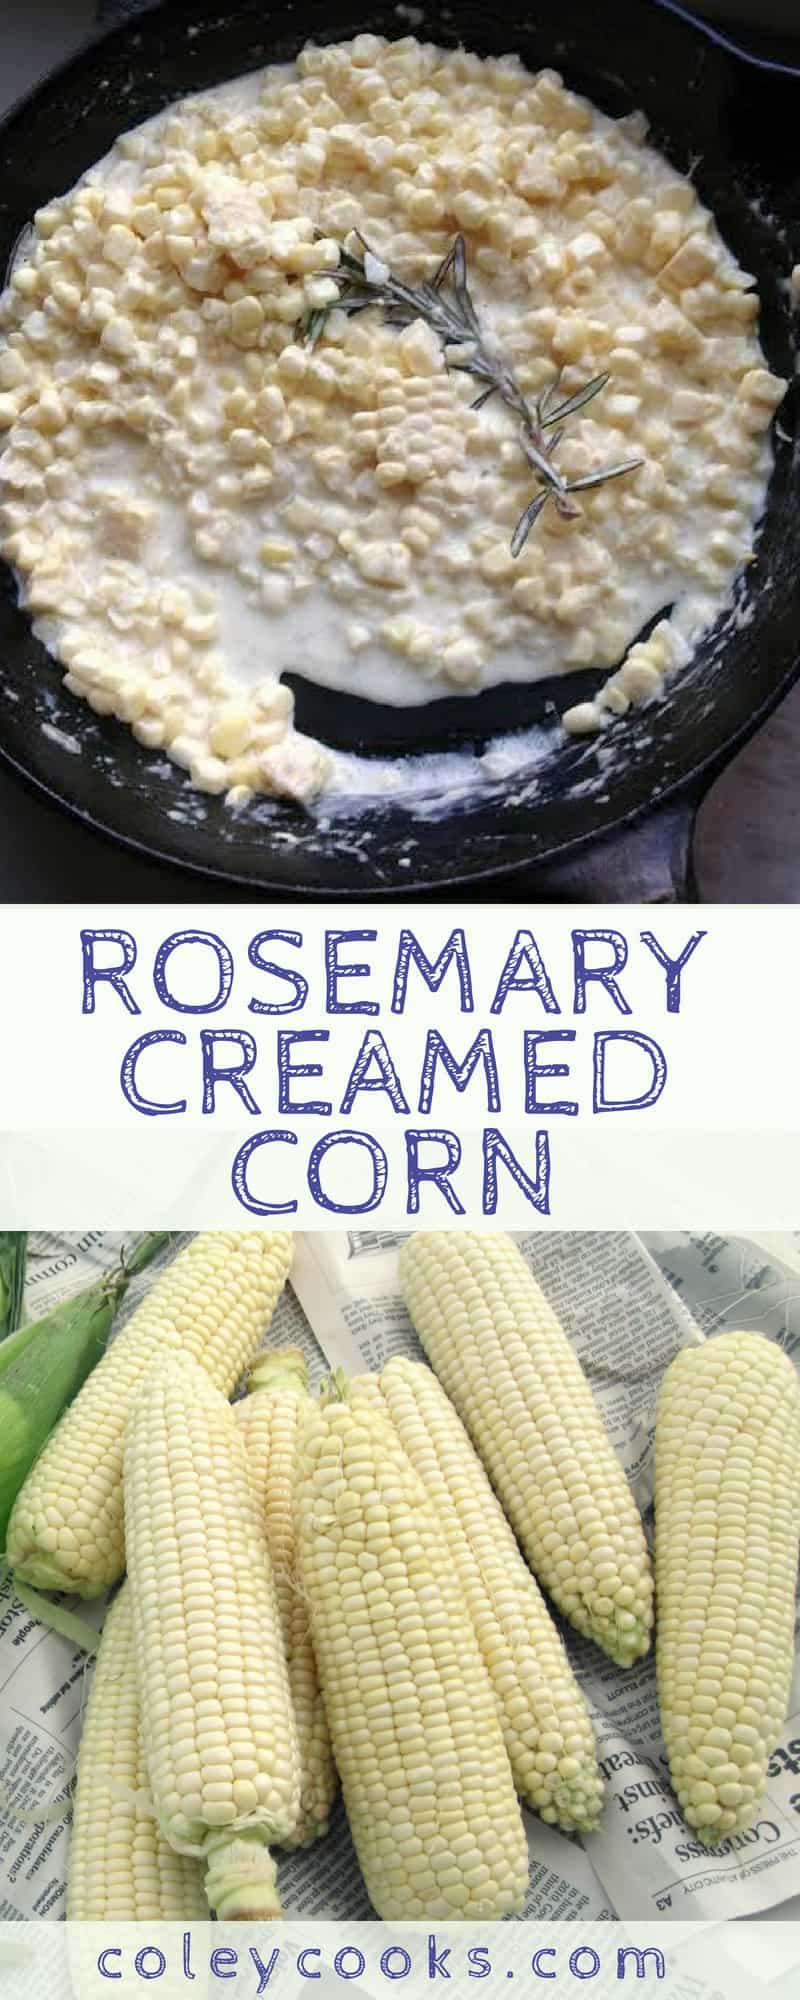 ROSEMARY CREAMED CORN | Easy creamed corn recipe! Fresh corn on the cob simmered in a simple rosemary cream sauce. A delicious summer side! #easy #summer #corn #side #recipe #southern | ColeyCooks.com